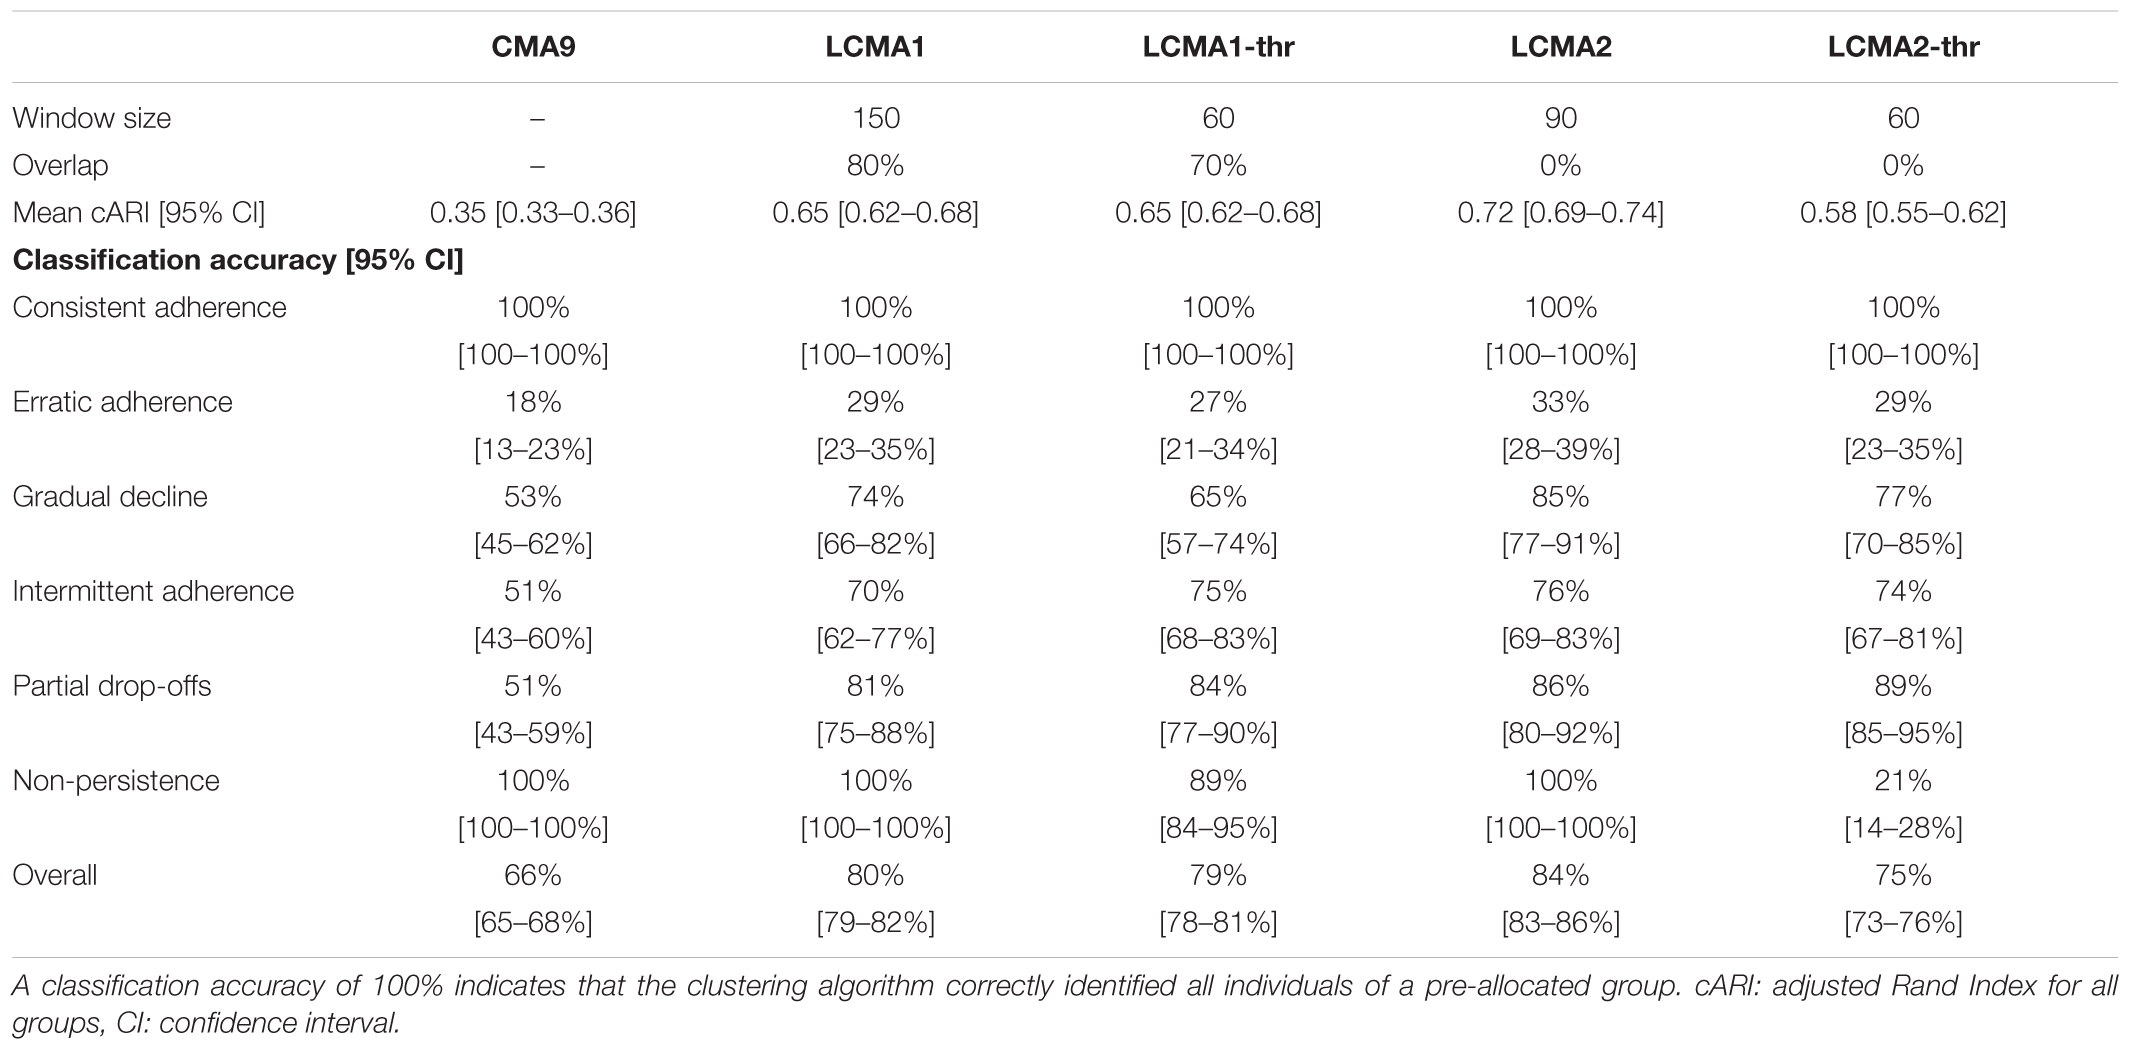 Frontiers | Beyond Adherence Thresholds: A Simulation Study of the